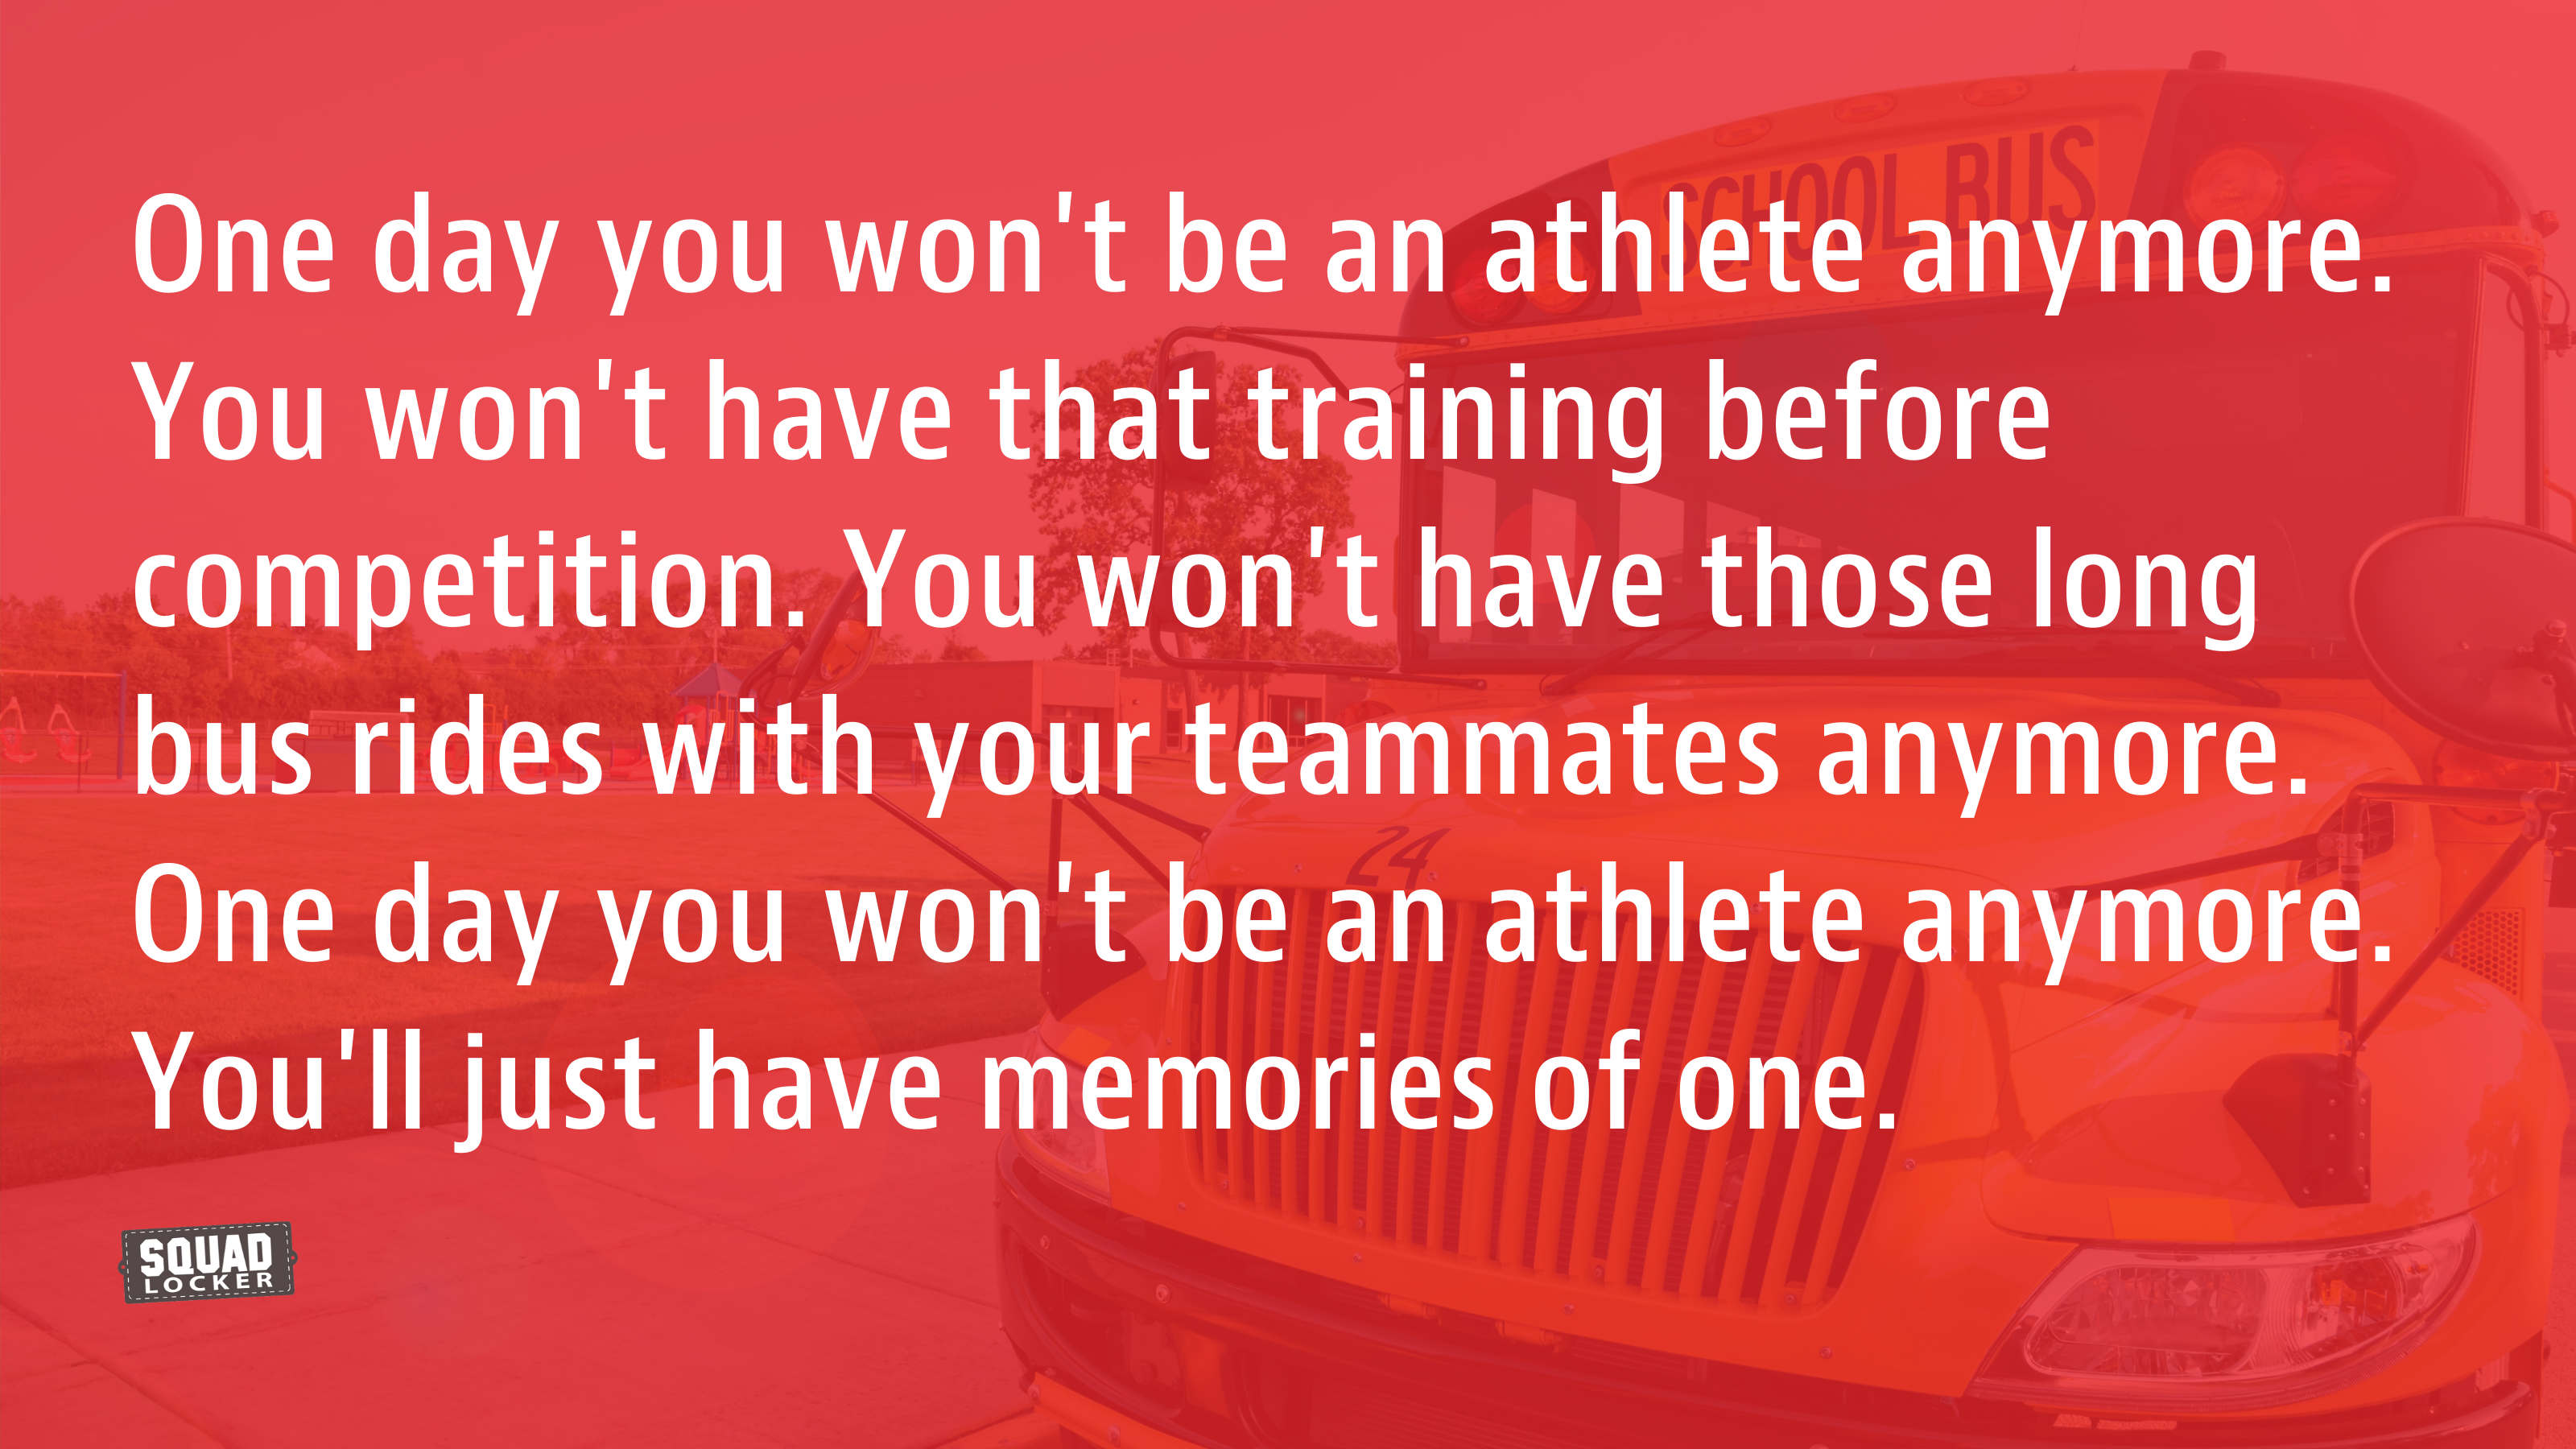 INSPIRING-SPORTS-QUOTES-SQUADLOCKER